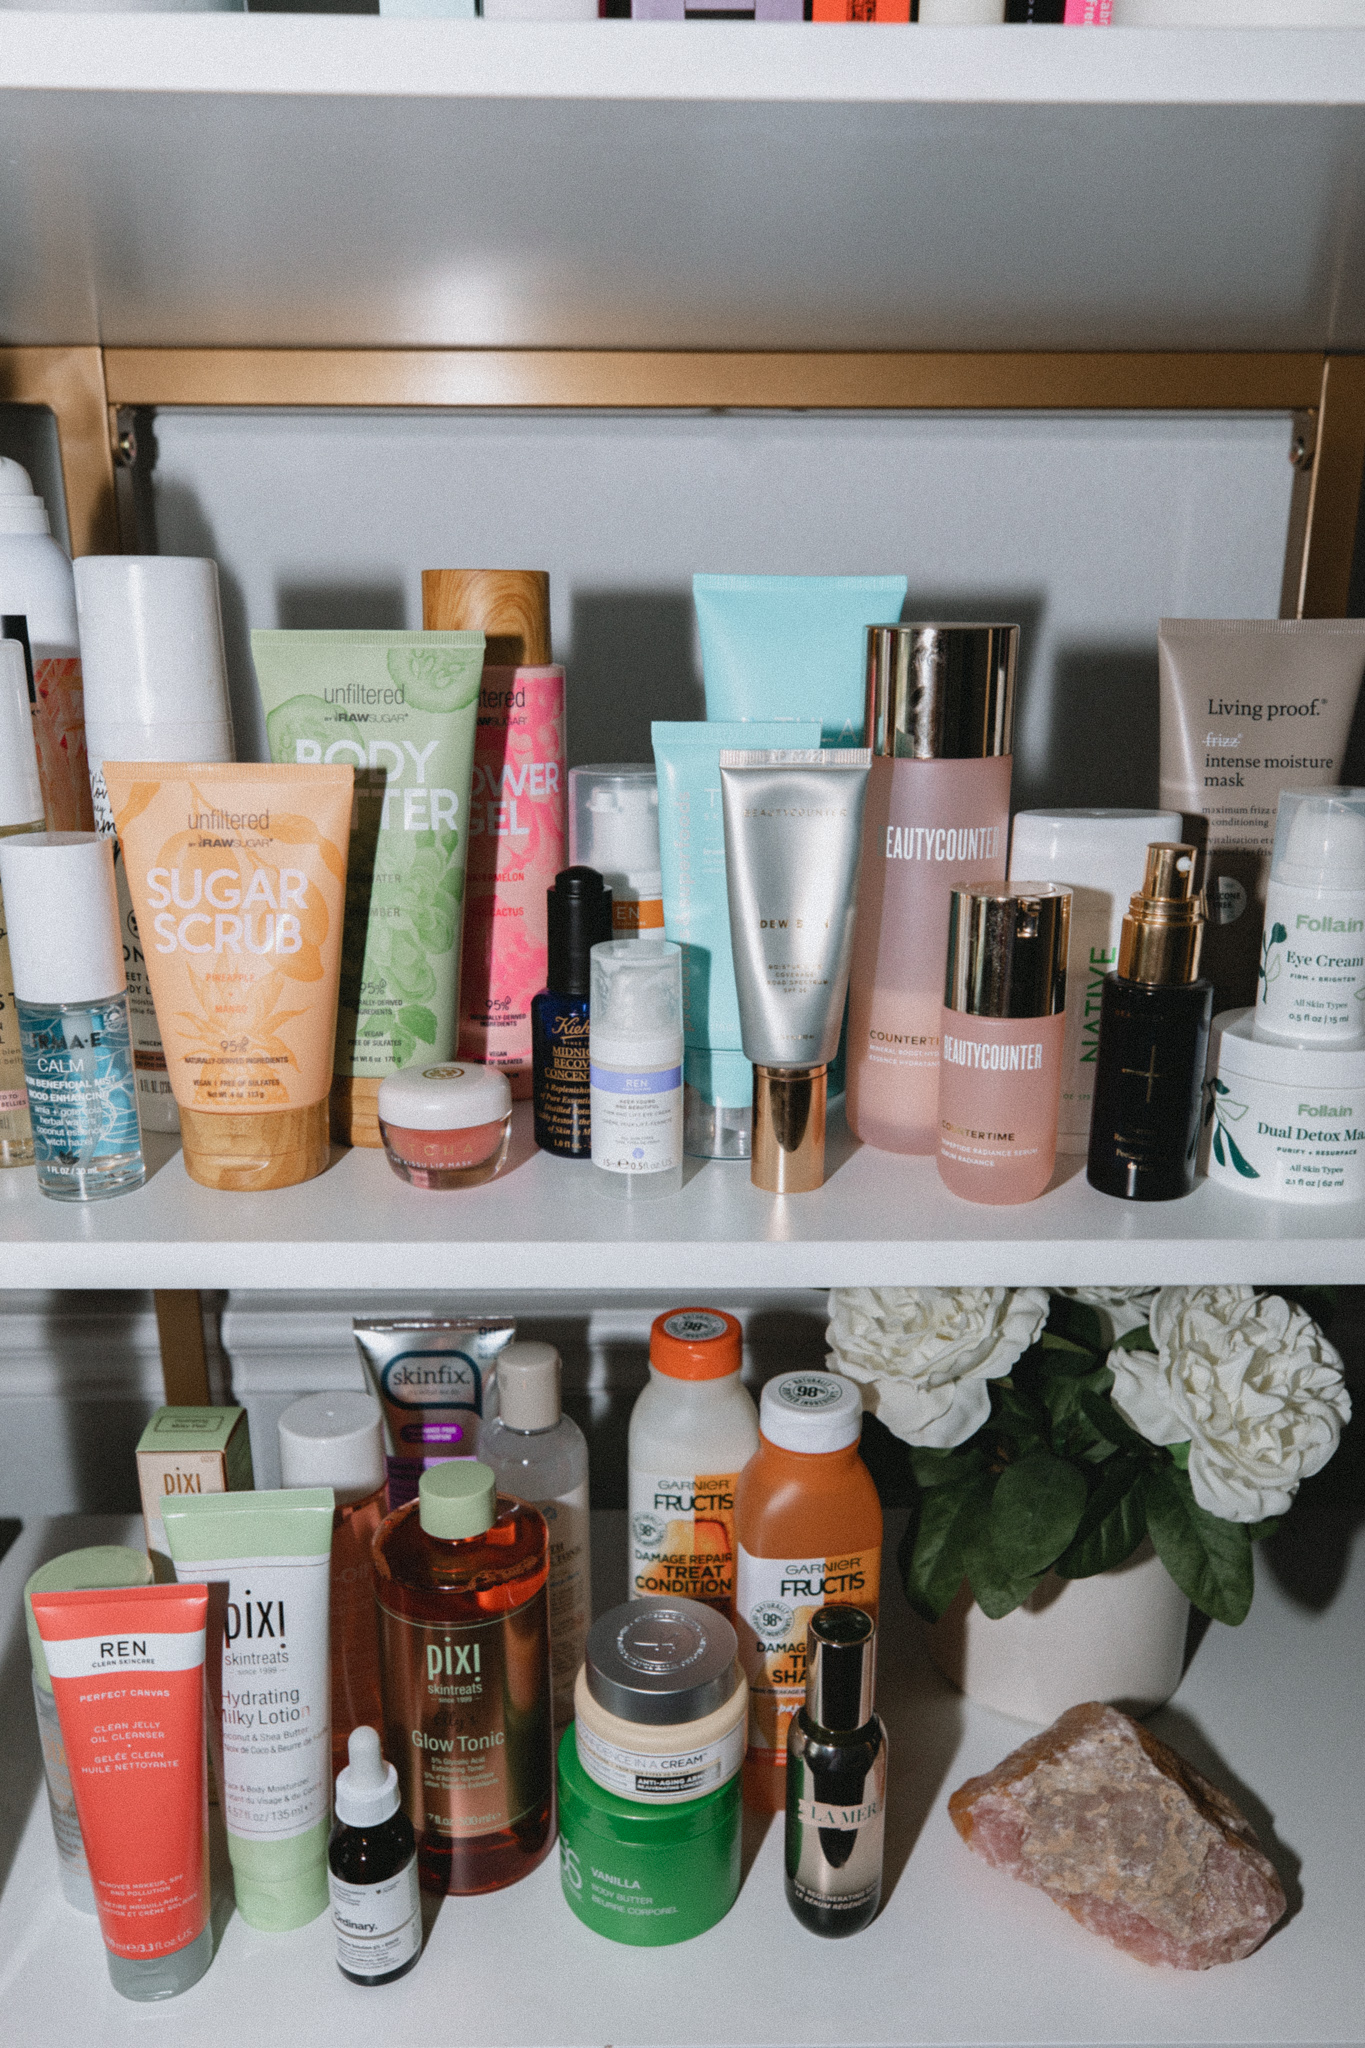 Houston lifestyle blogger Elly Brown opens up about her journey to Clean Beauty. Why she's doing and what she's learned along the way!